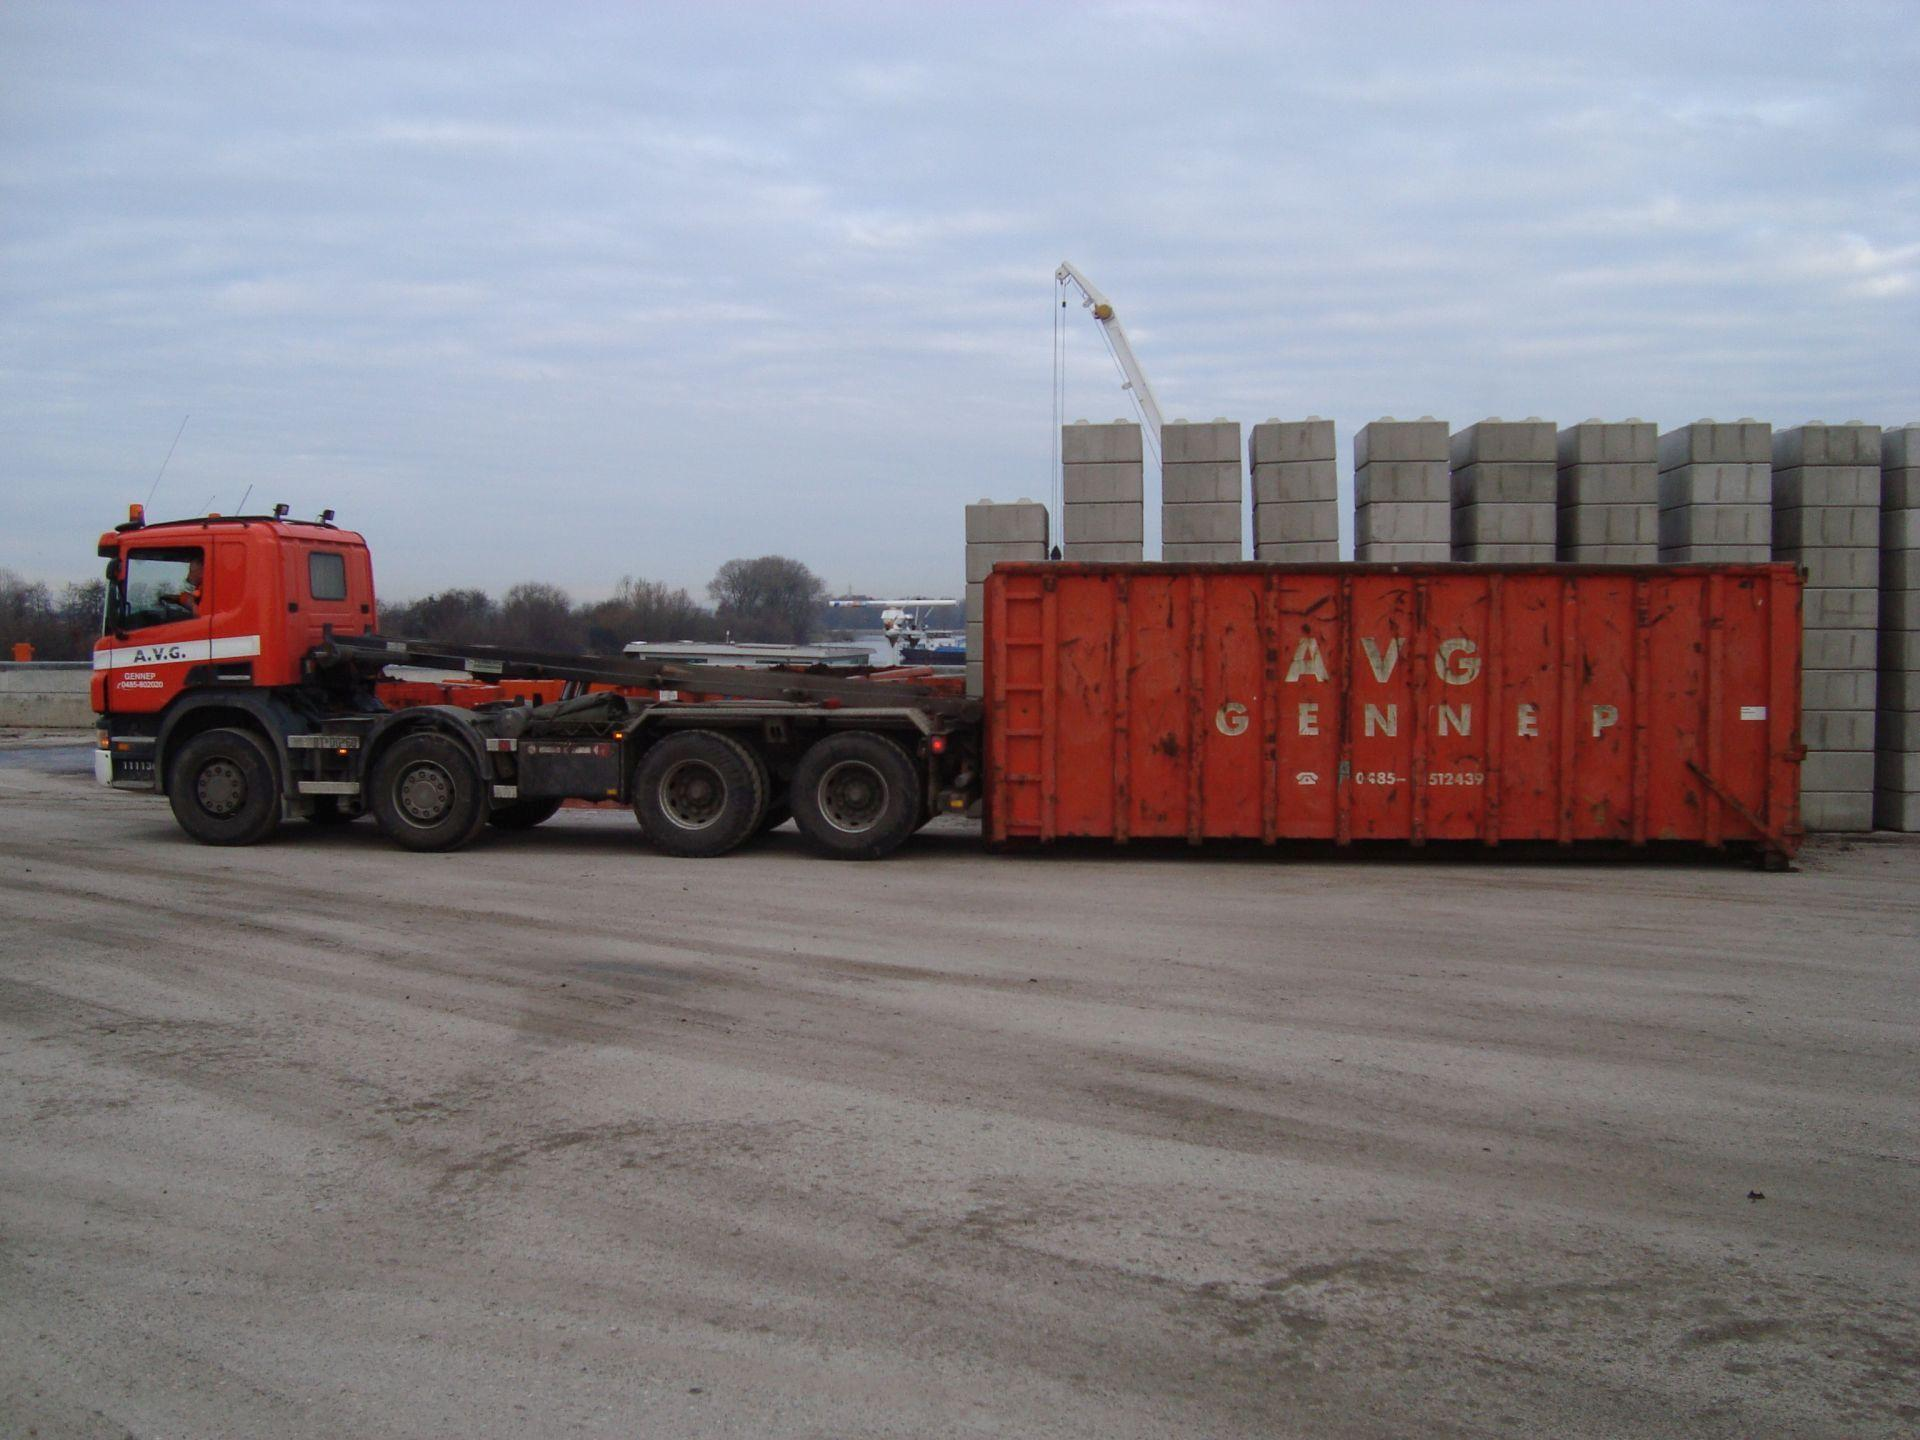 grote-container-5-avg-bouwstoffen